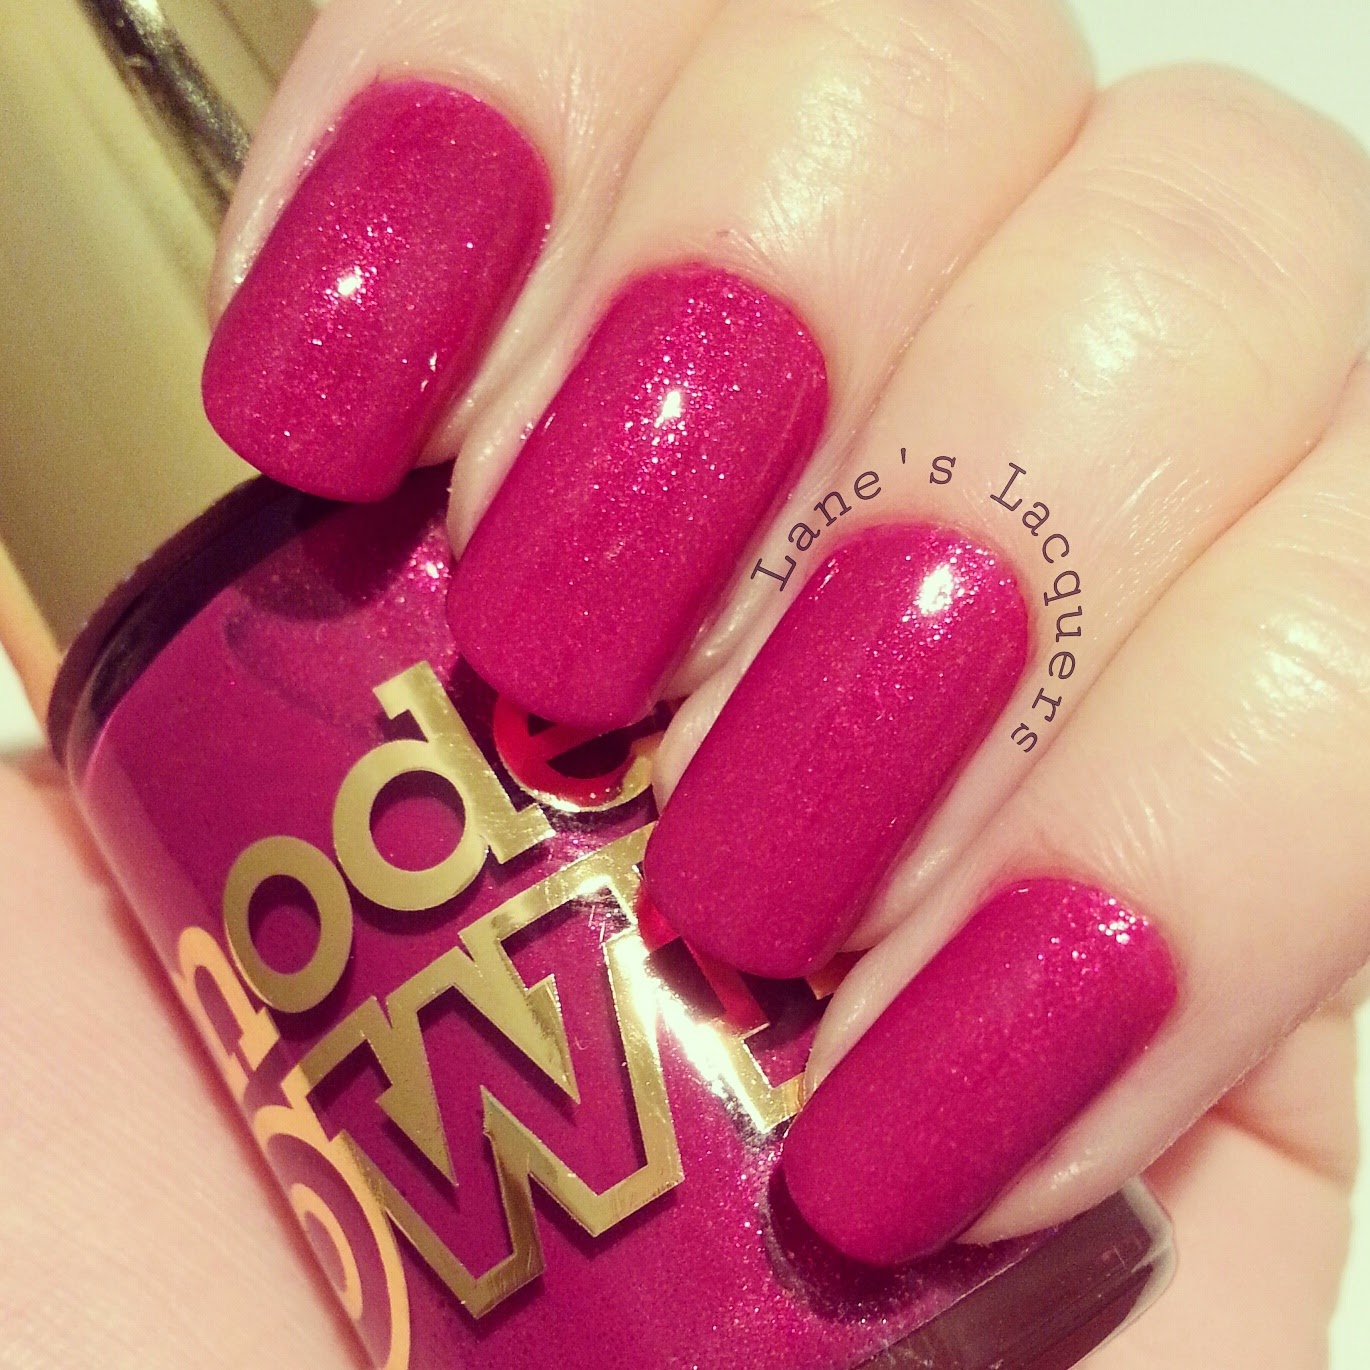 new-models-own-luxe-collection-oval-plum-swatch-nails